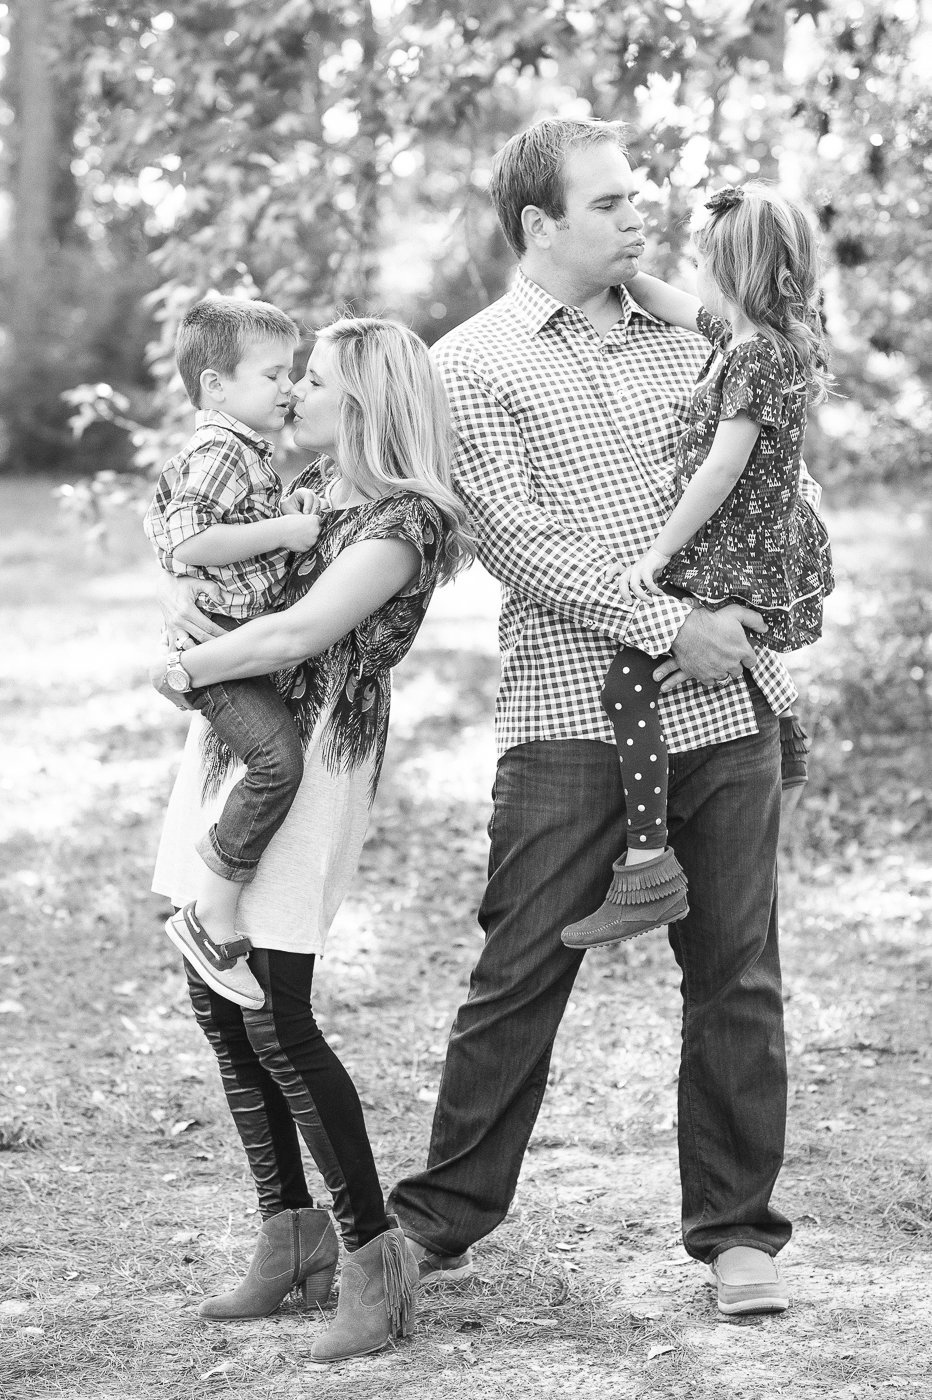 thewoodlands-family-portrait-photographer-15